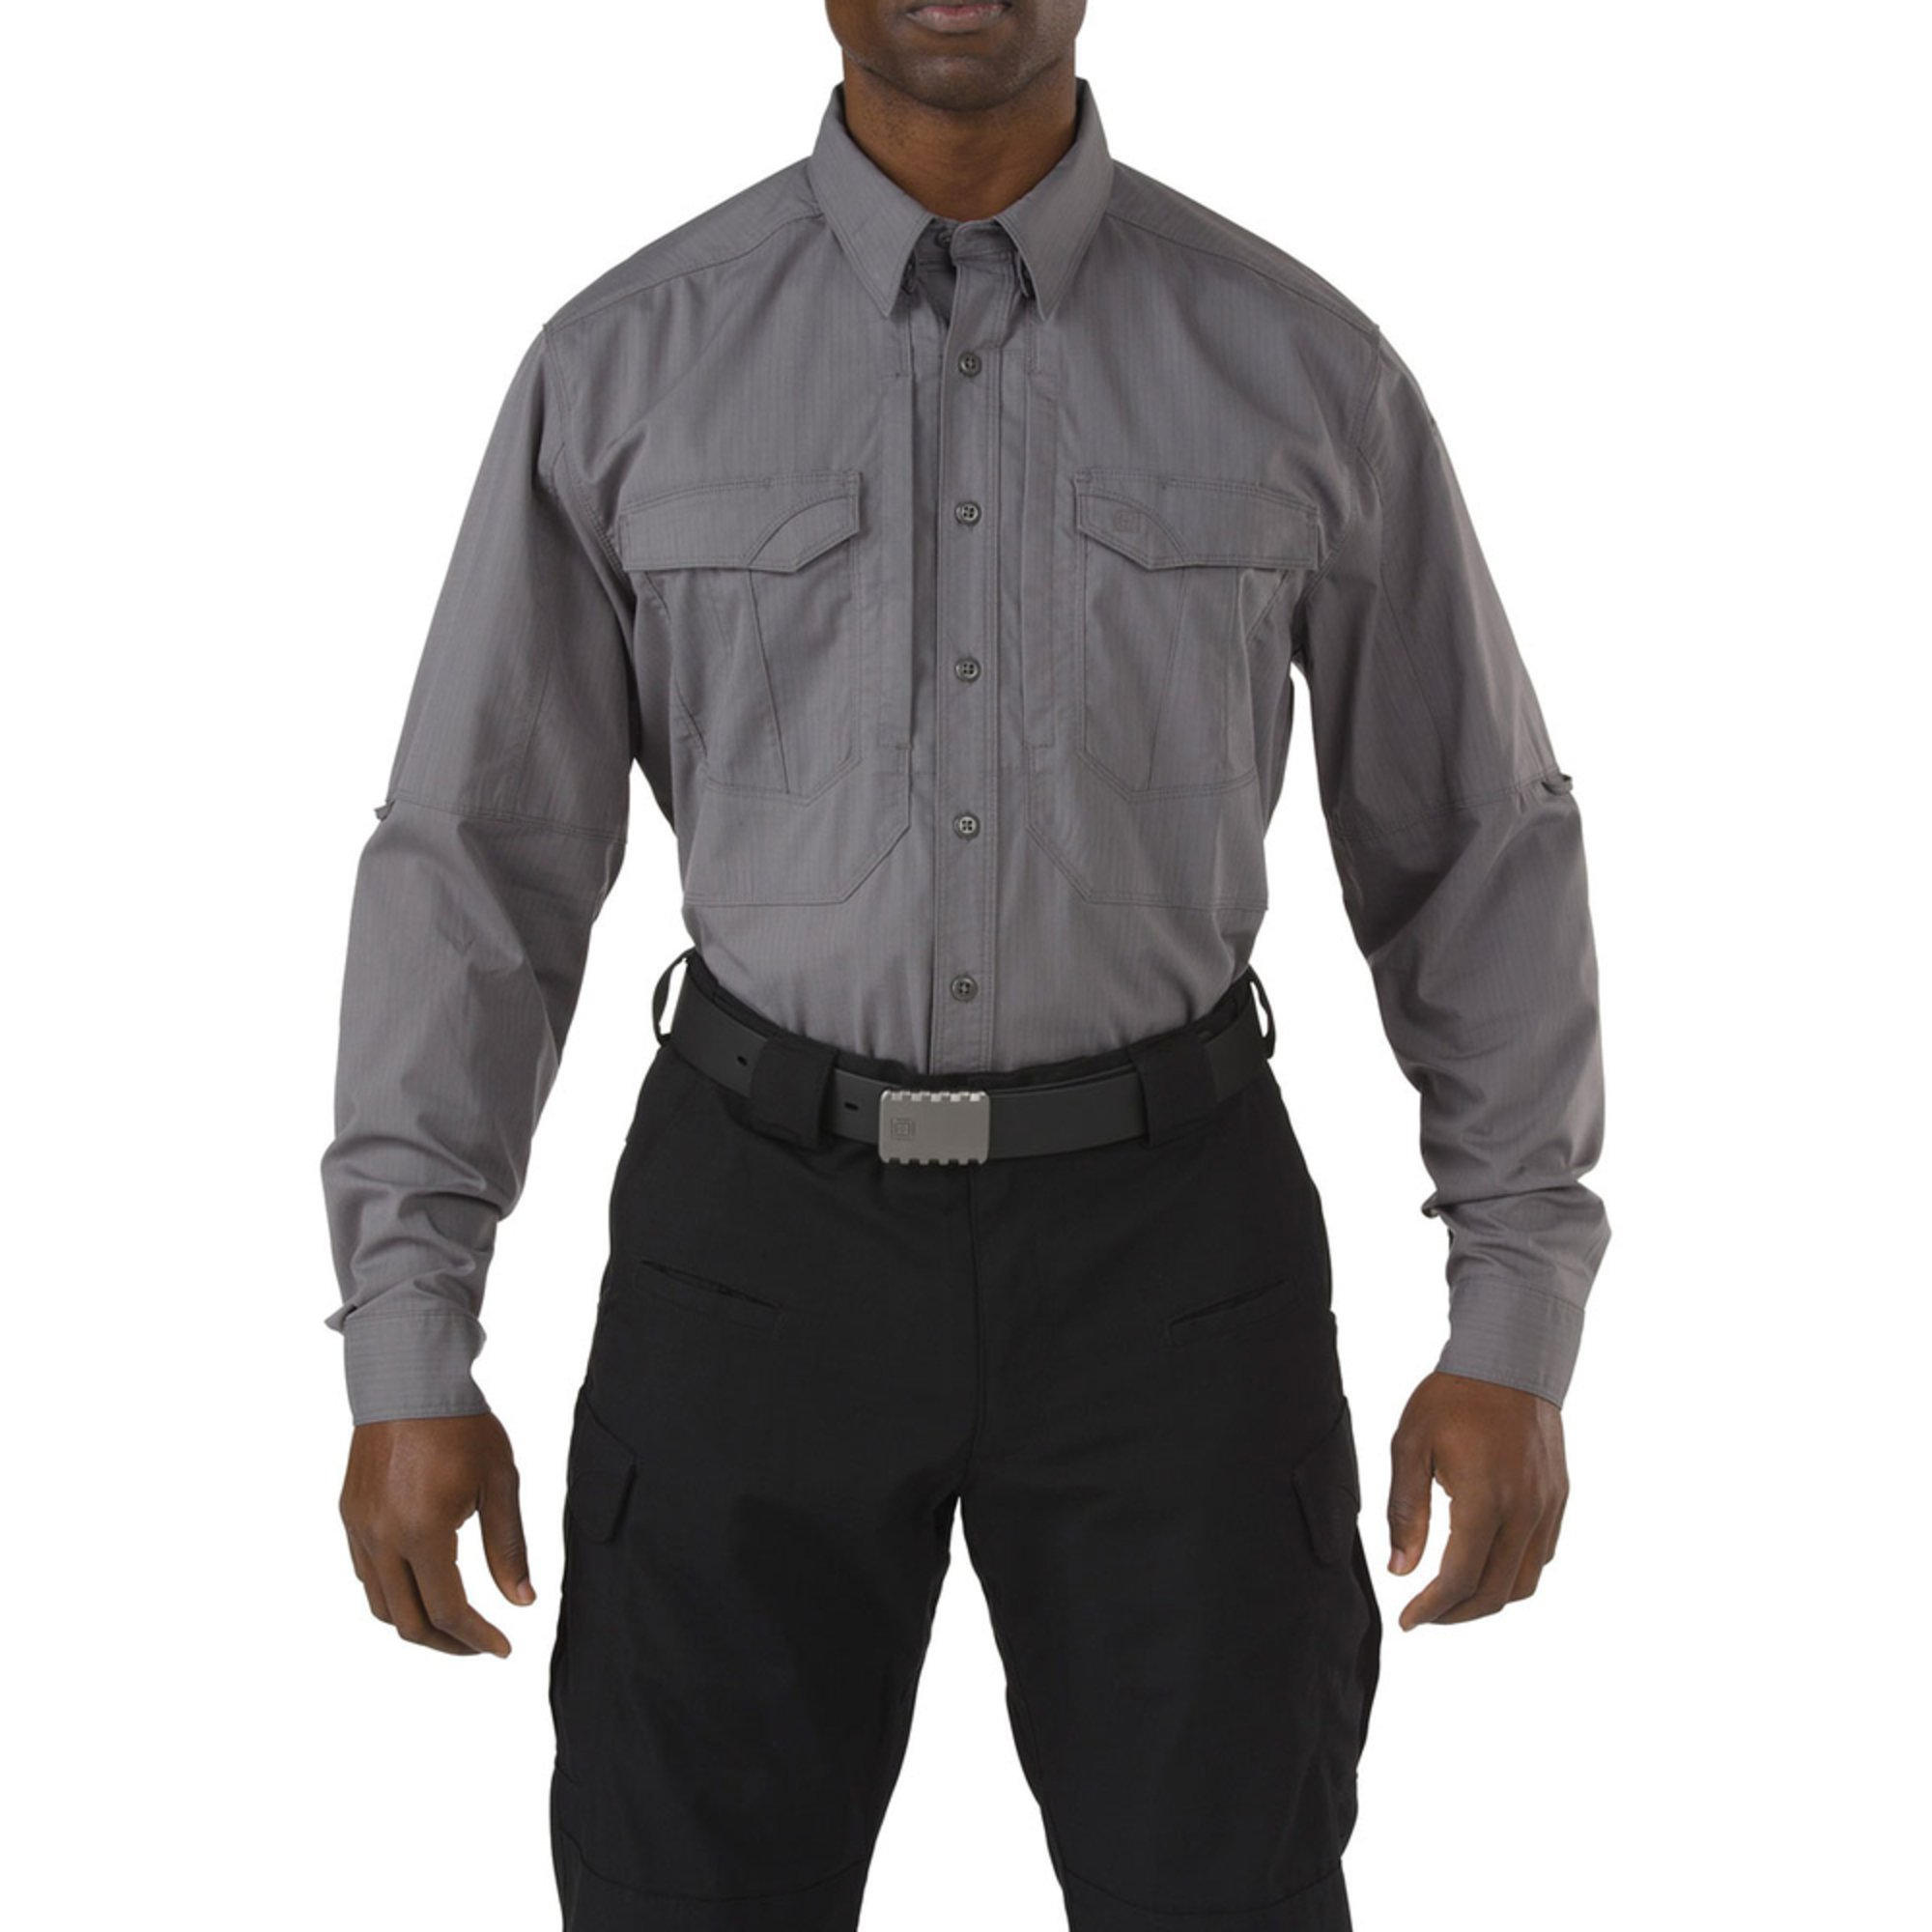 bd87e3694 5.11 Men's Stryke Shirt | Shirts | Military - Shop Your Navy ...